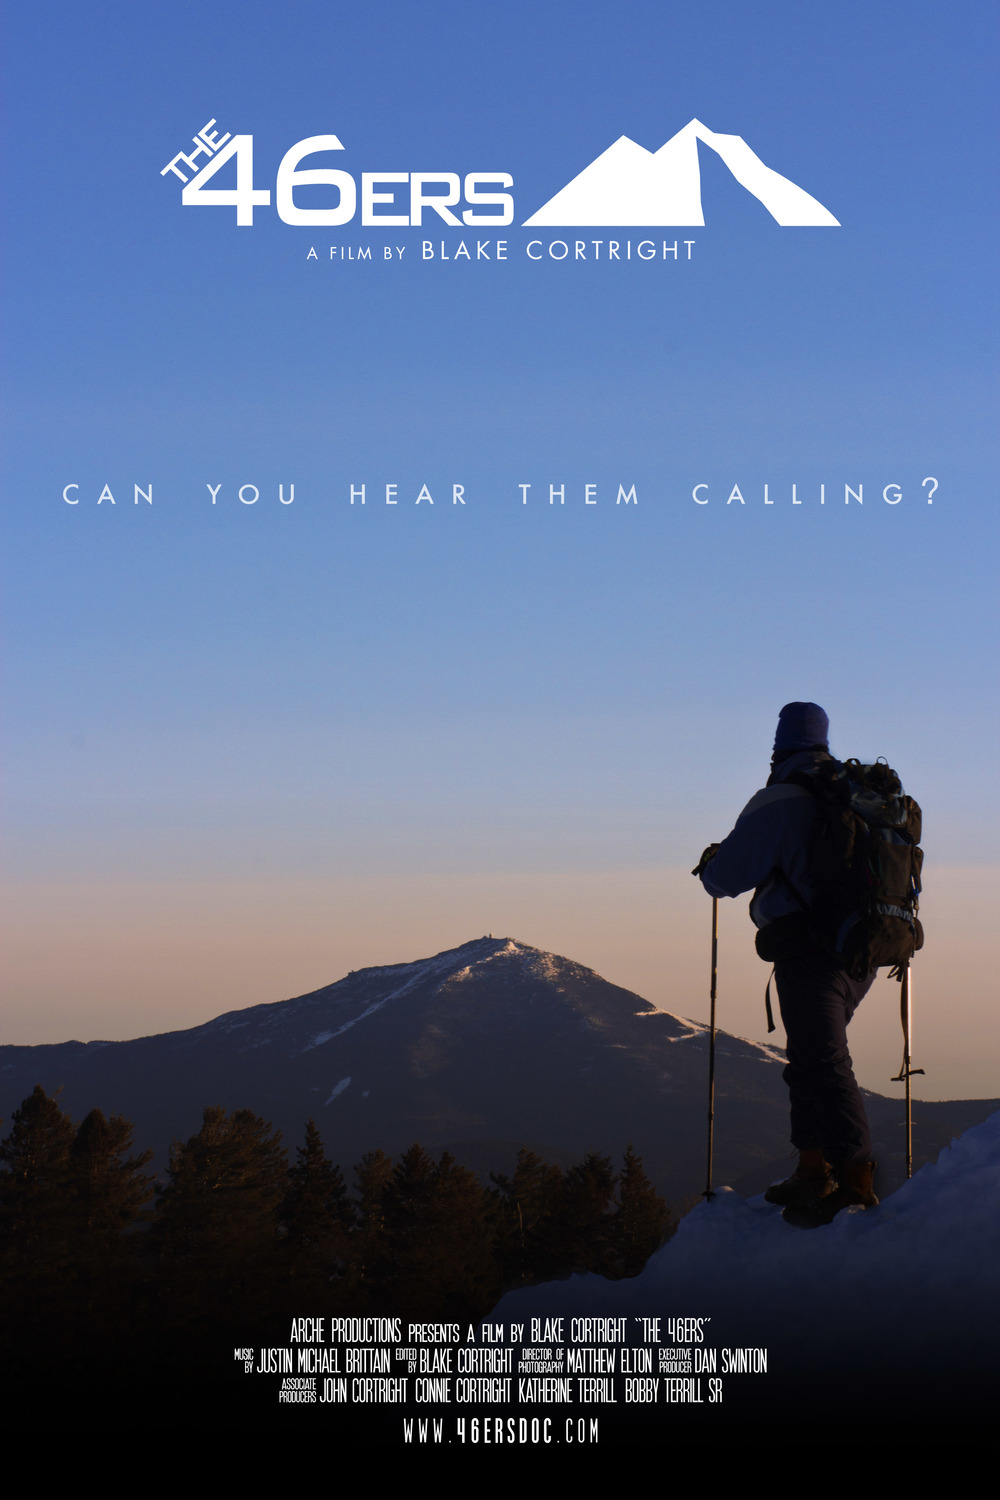 Can you hear them calling?